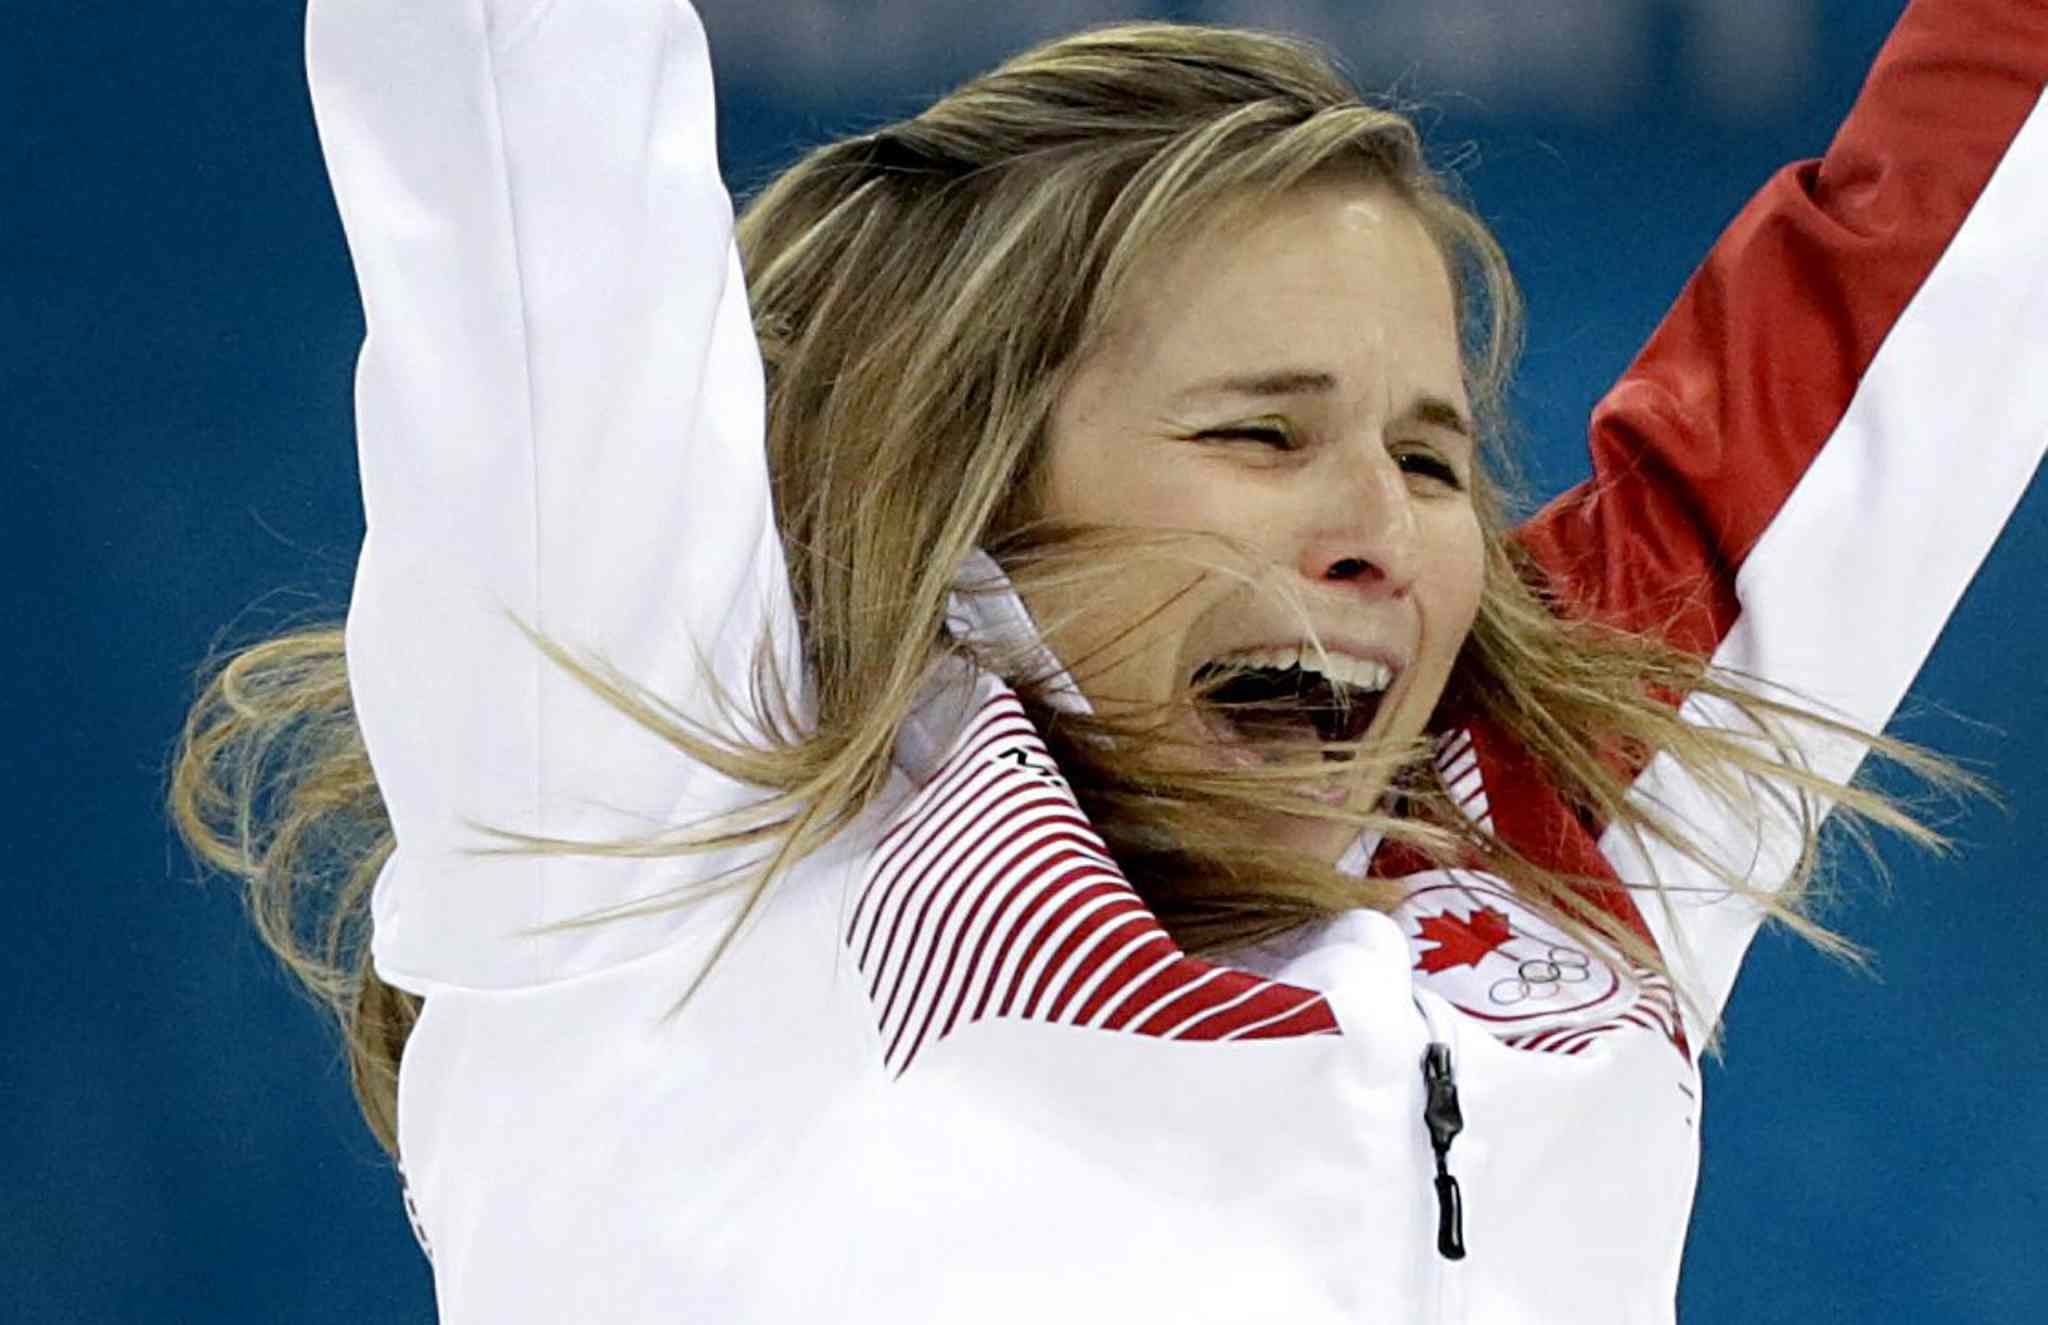 Canada's skip Jennifer Jones celebrates after winning the women's curling gold medal game against Sweden at the 2014 Winter Olympics on Thursday in Sochi, Russia.